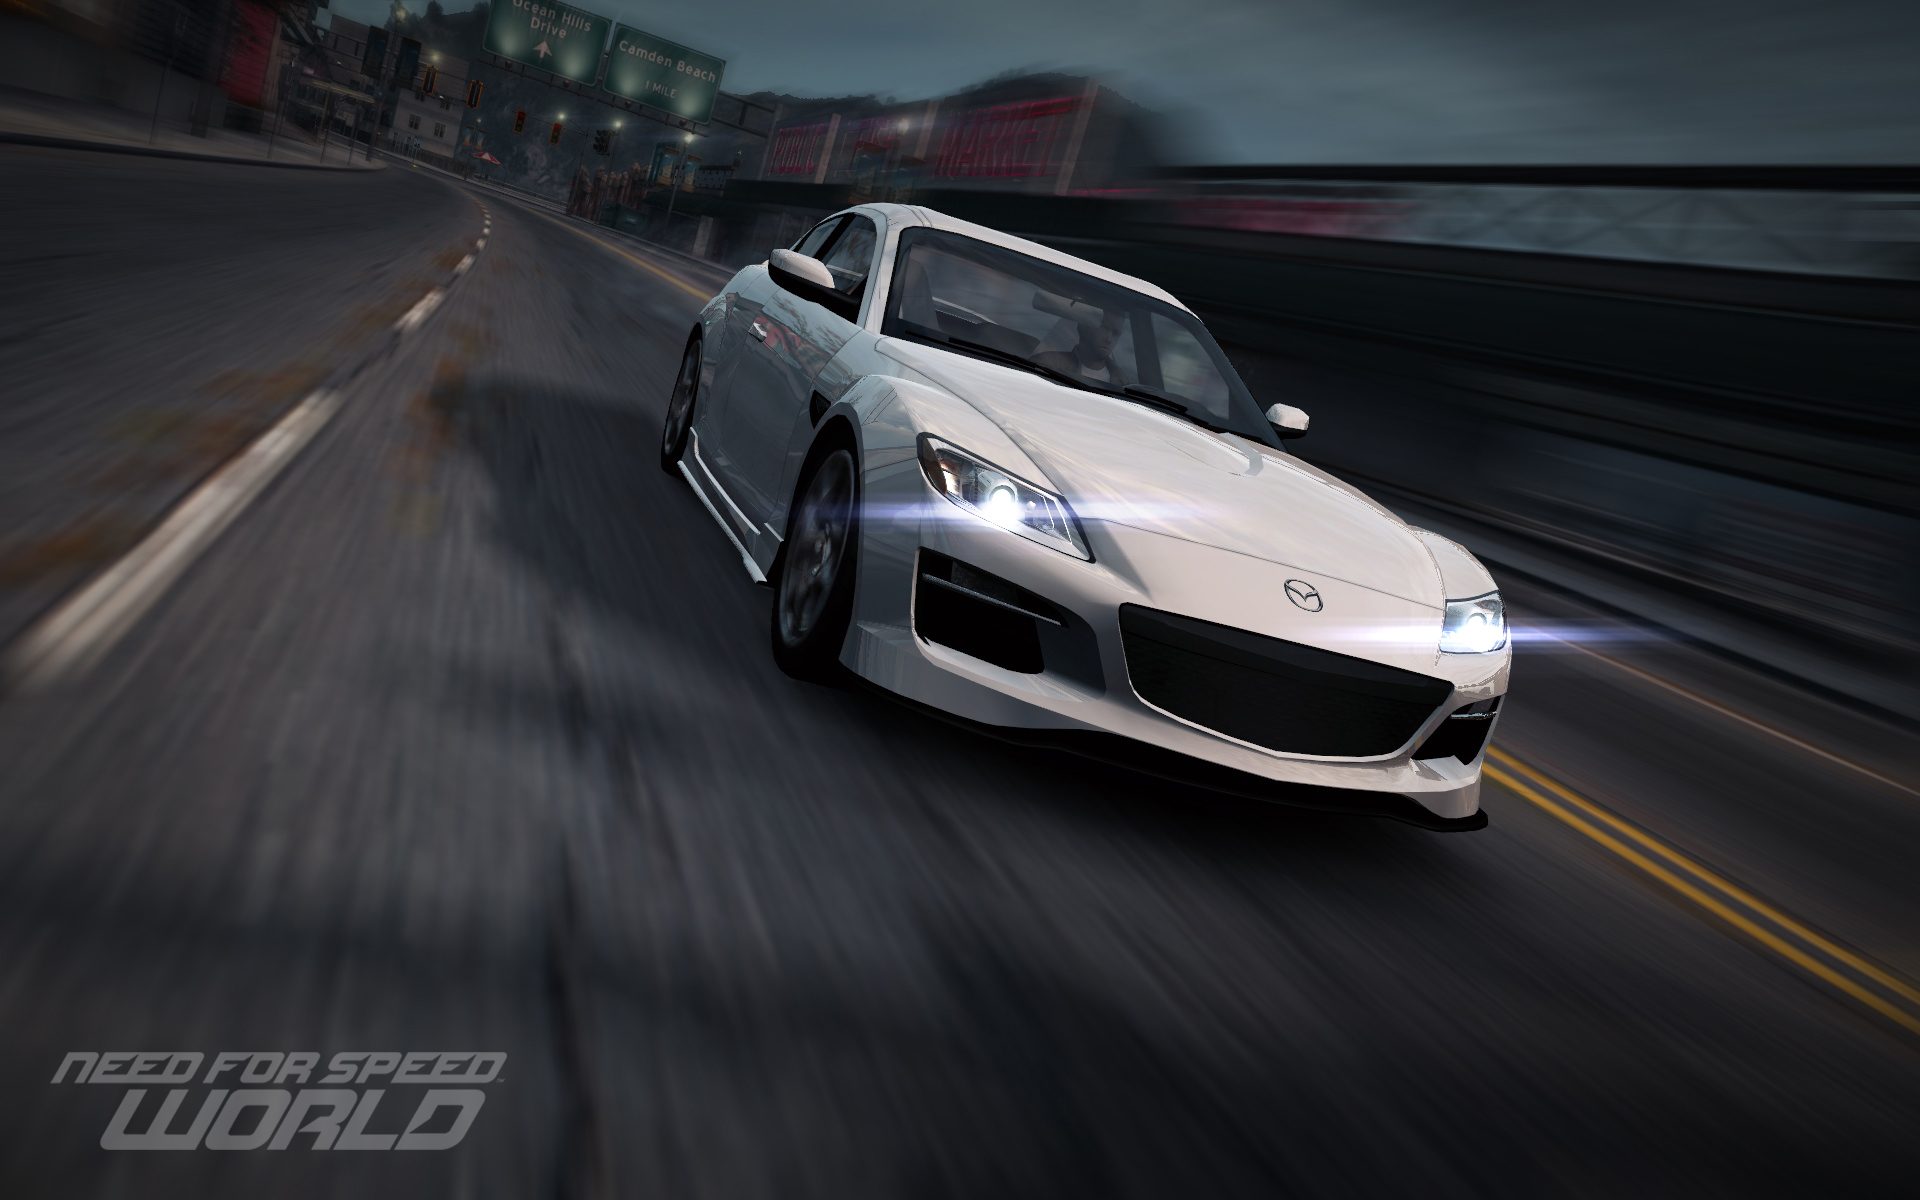 mazda rx-8 (2009) | nfs world wiki | fandom poweredwikia